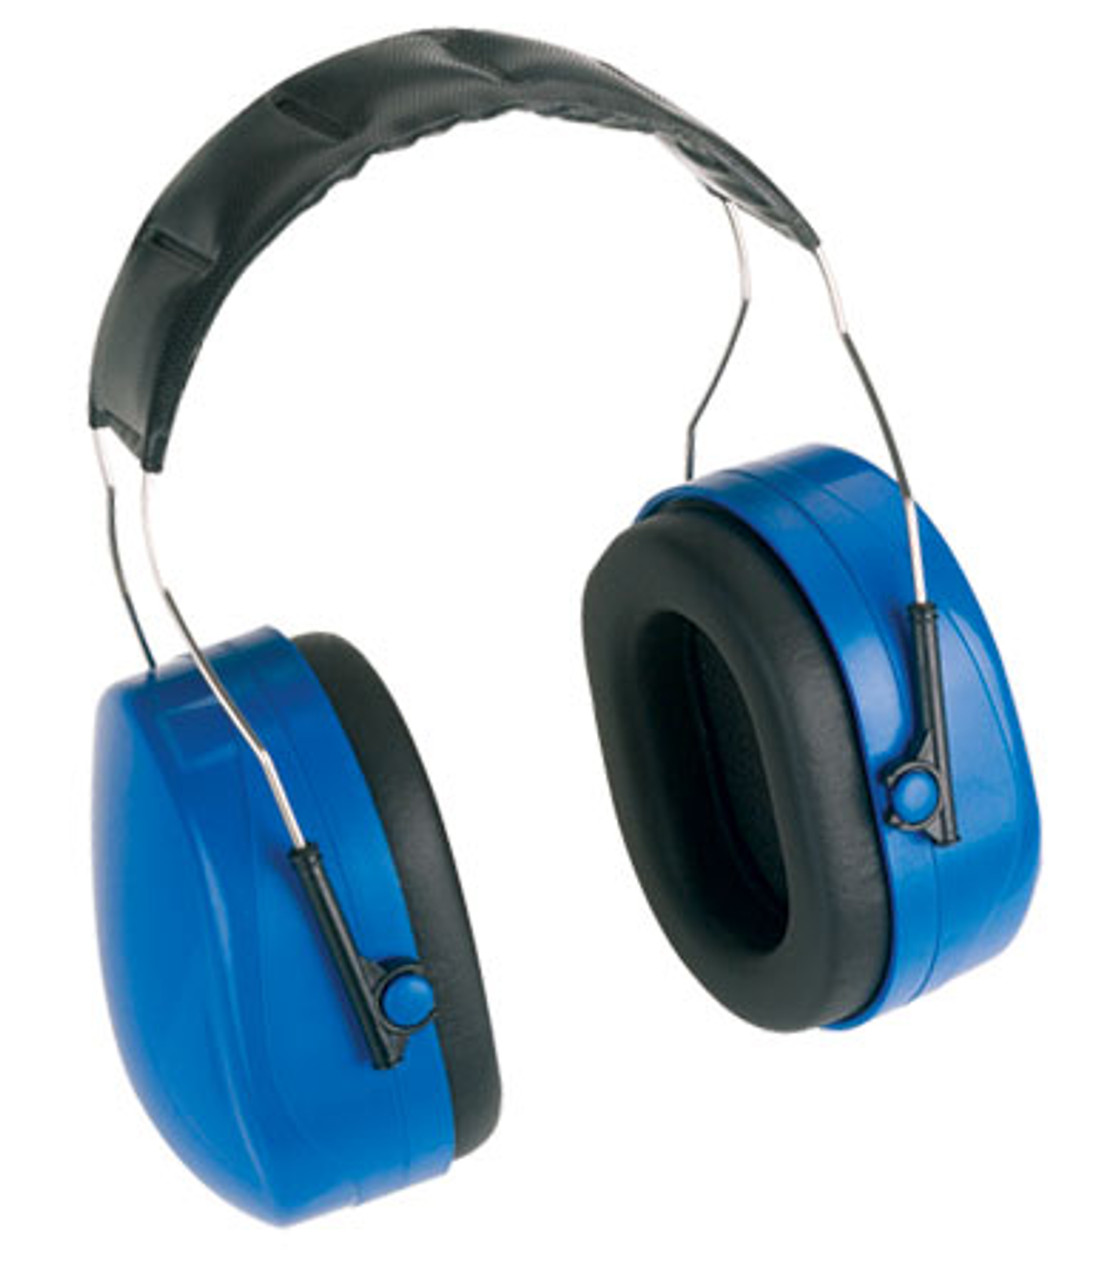 Lone Star Extreme Ear Muffs, Blue, NRR 24, Padded Foam Headband,